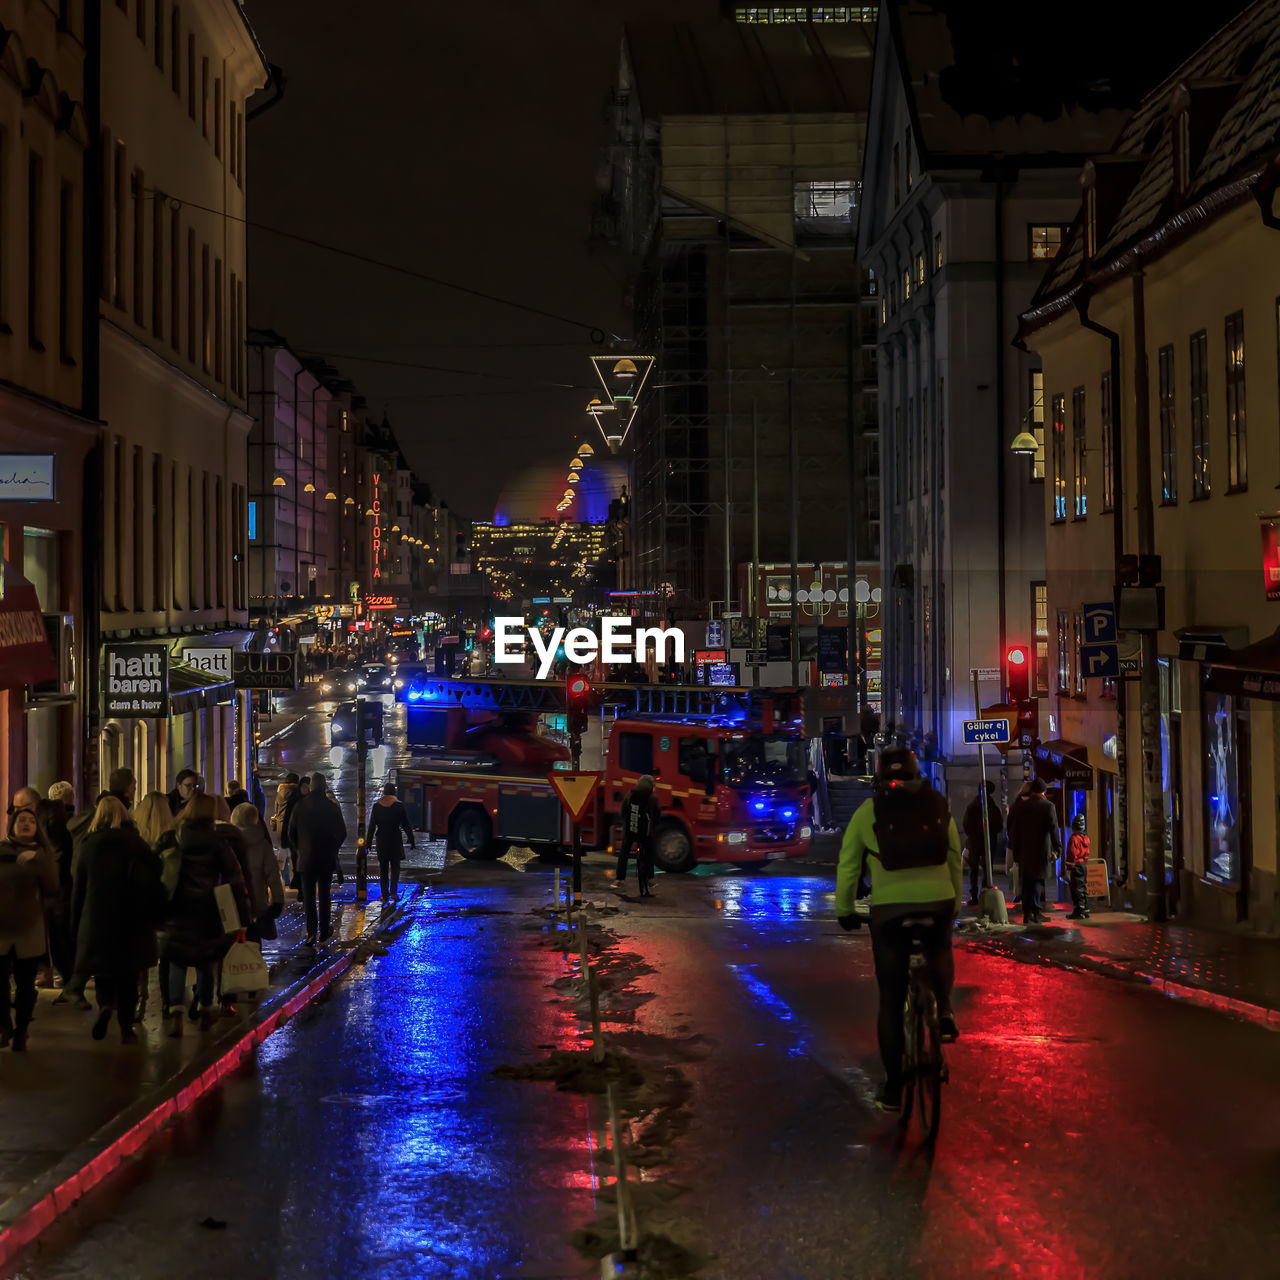 architecture, city, illuminated, night, building exterior, group of people, built structure, real people, street, transportation, city life, mode of transportation, lifestyles, men, large group of people, crowd, women, city street, road, outdoors